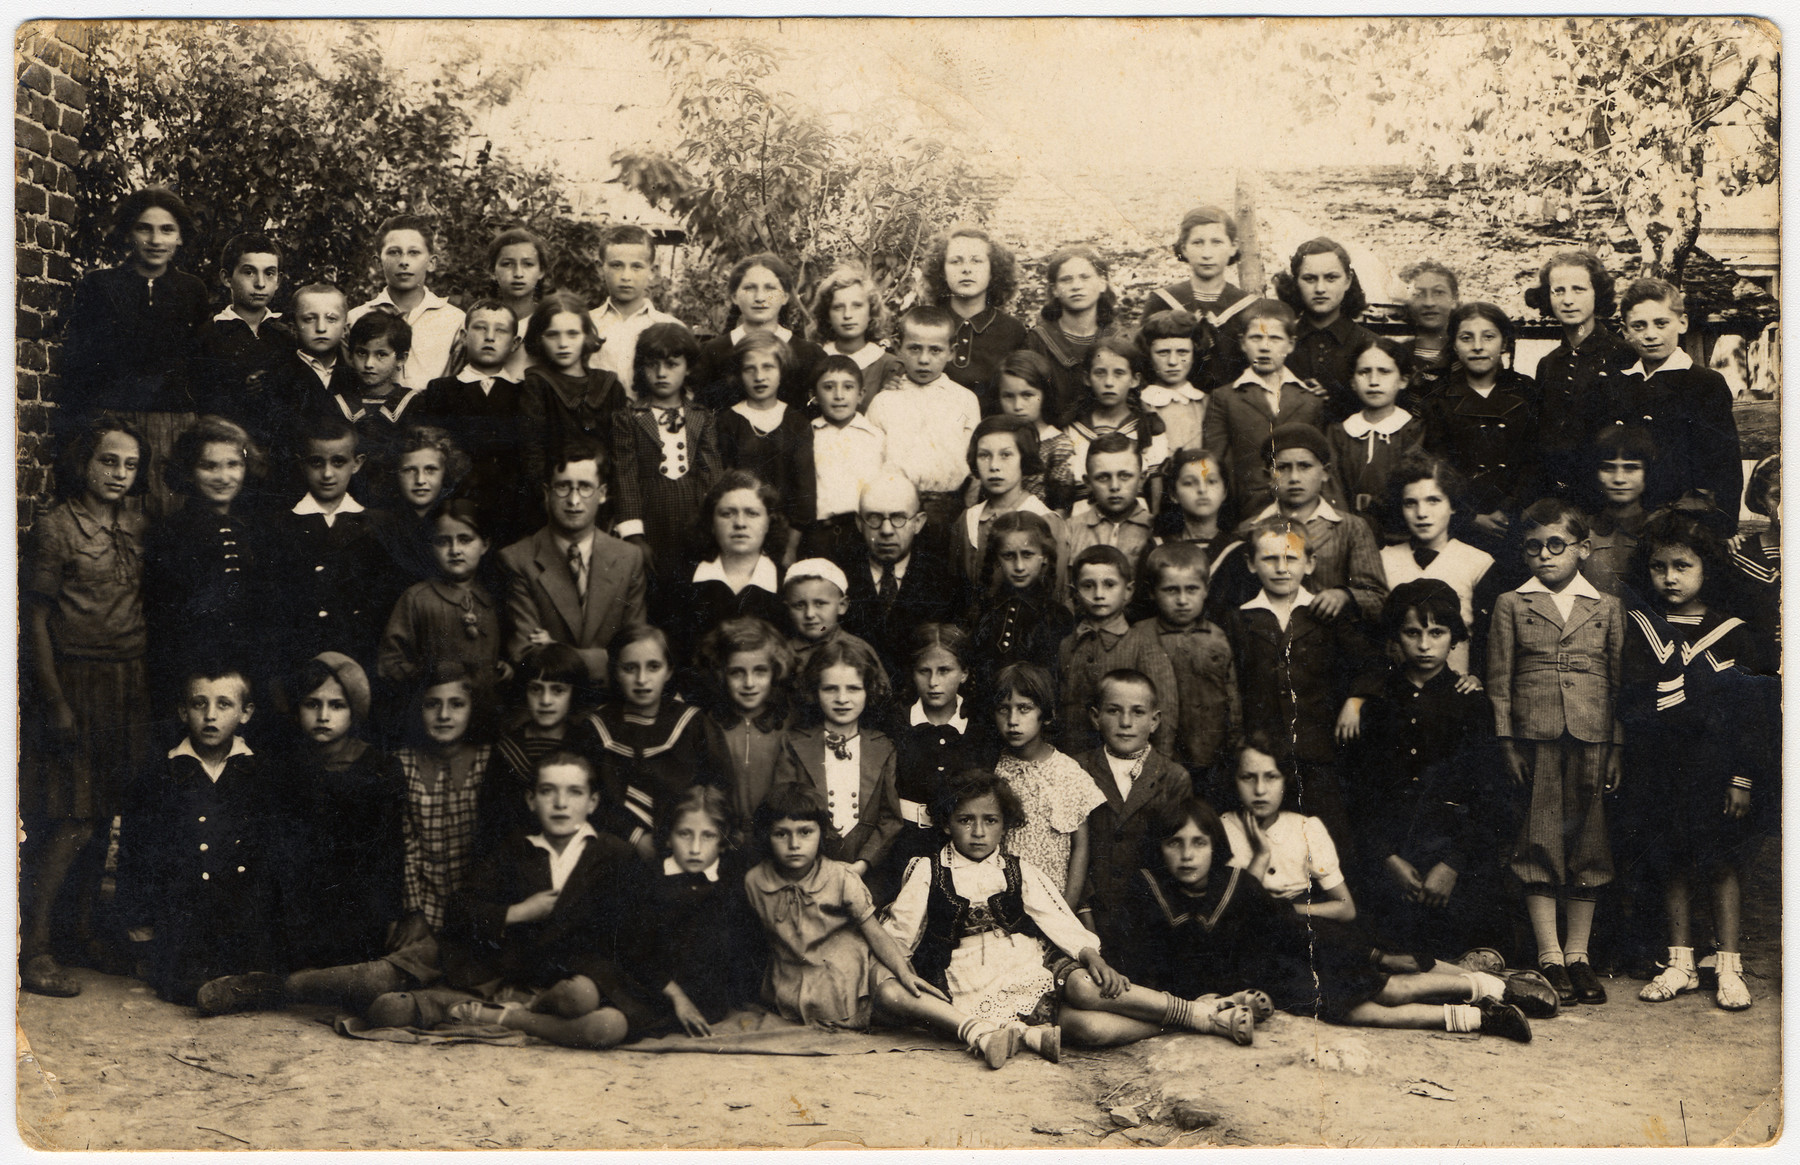 Group portrait of the children and teachers in the Tarbut school in Belzyce.  Sara Wiener is pictured in the third row, fourth from the left.  Her sister Dina is pictured in the second row, sixth from the left.  The fourth person from the left, top row is Esther Lajwand,  The second person from the left, fourth row is Ethel Lajwand, sister to Esther.   In the fourth row, fourth from the right (wearing a beret) is Kalman (Carl) Lajwand, brother to Esther and Ethel.